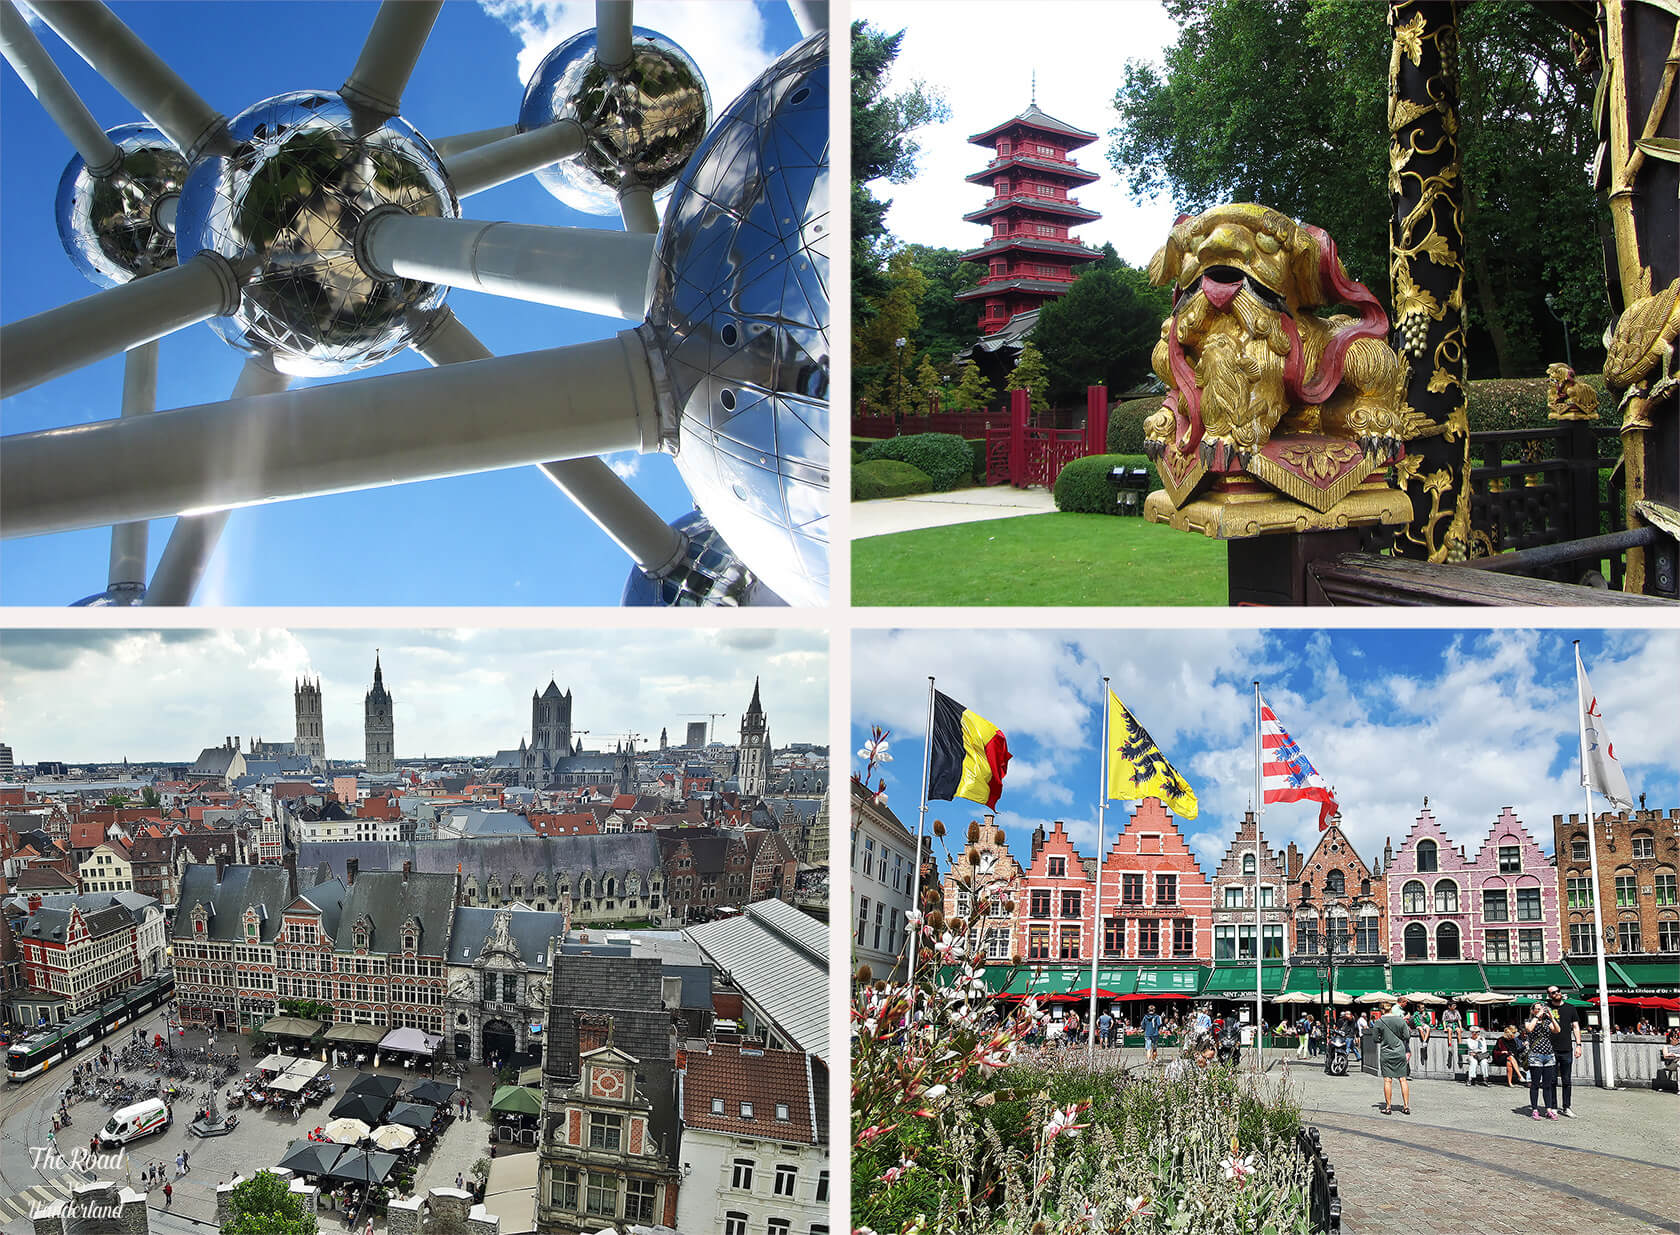 Review of 2017: Pics from Brussels, Bruges & Ghent, Belgium